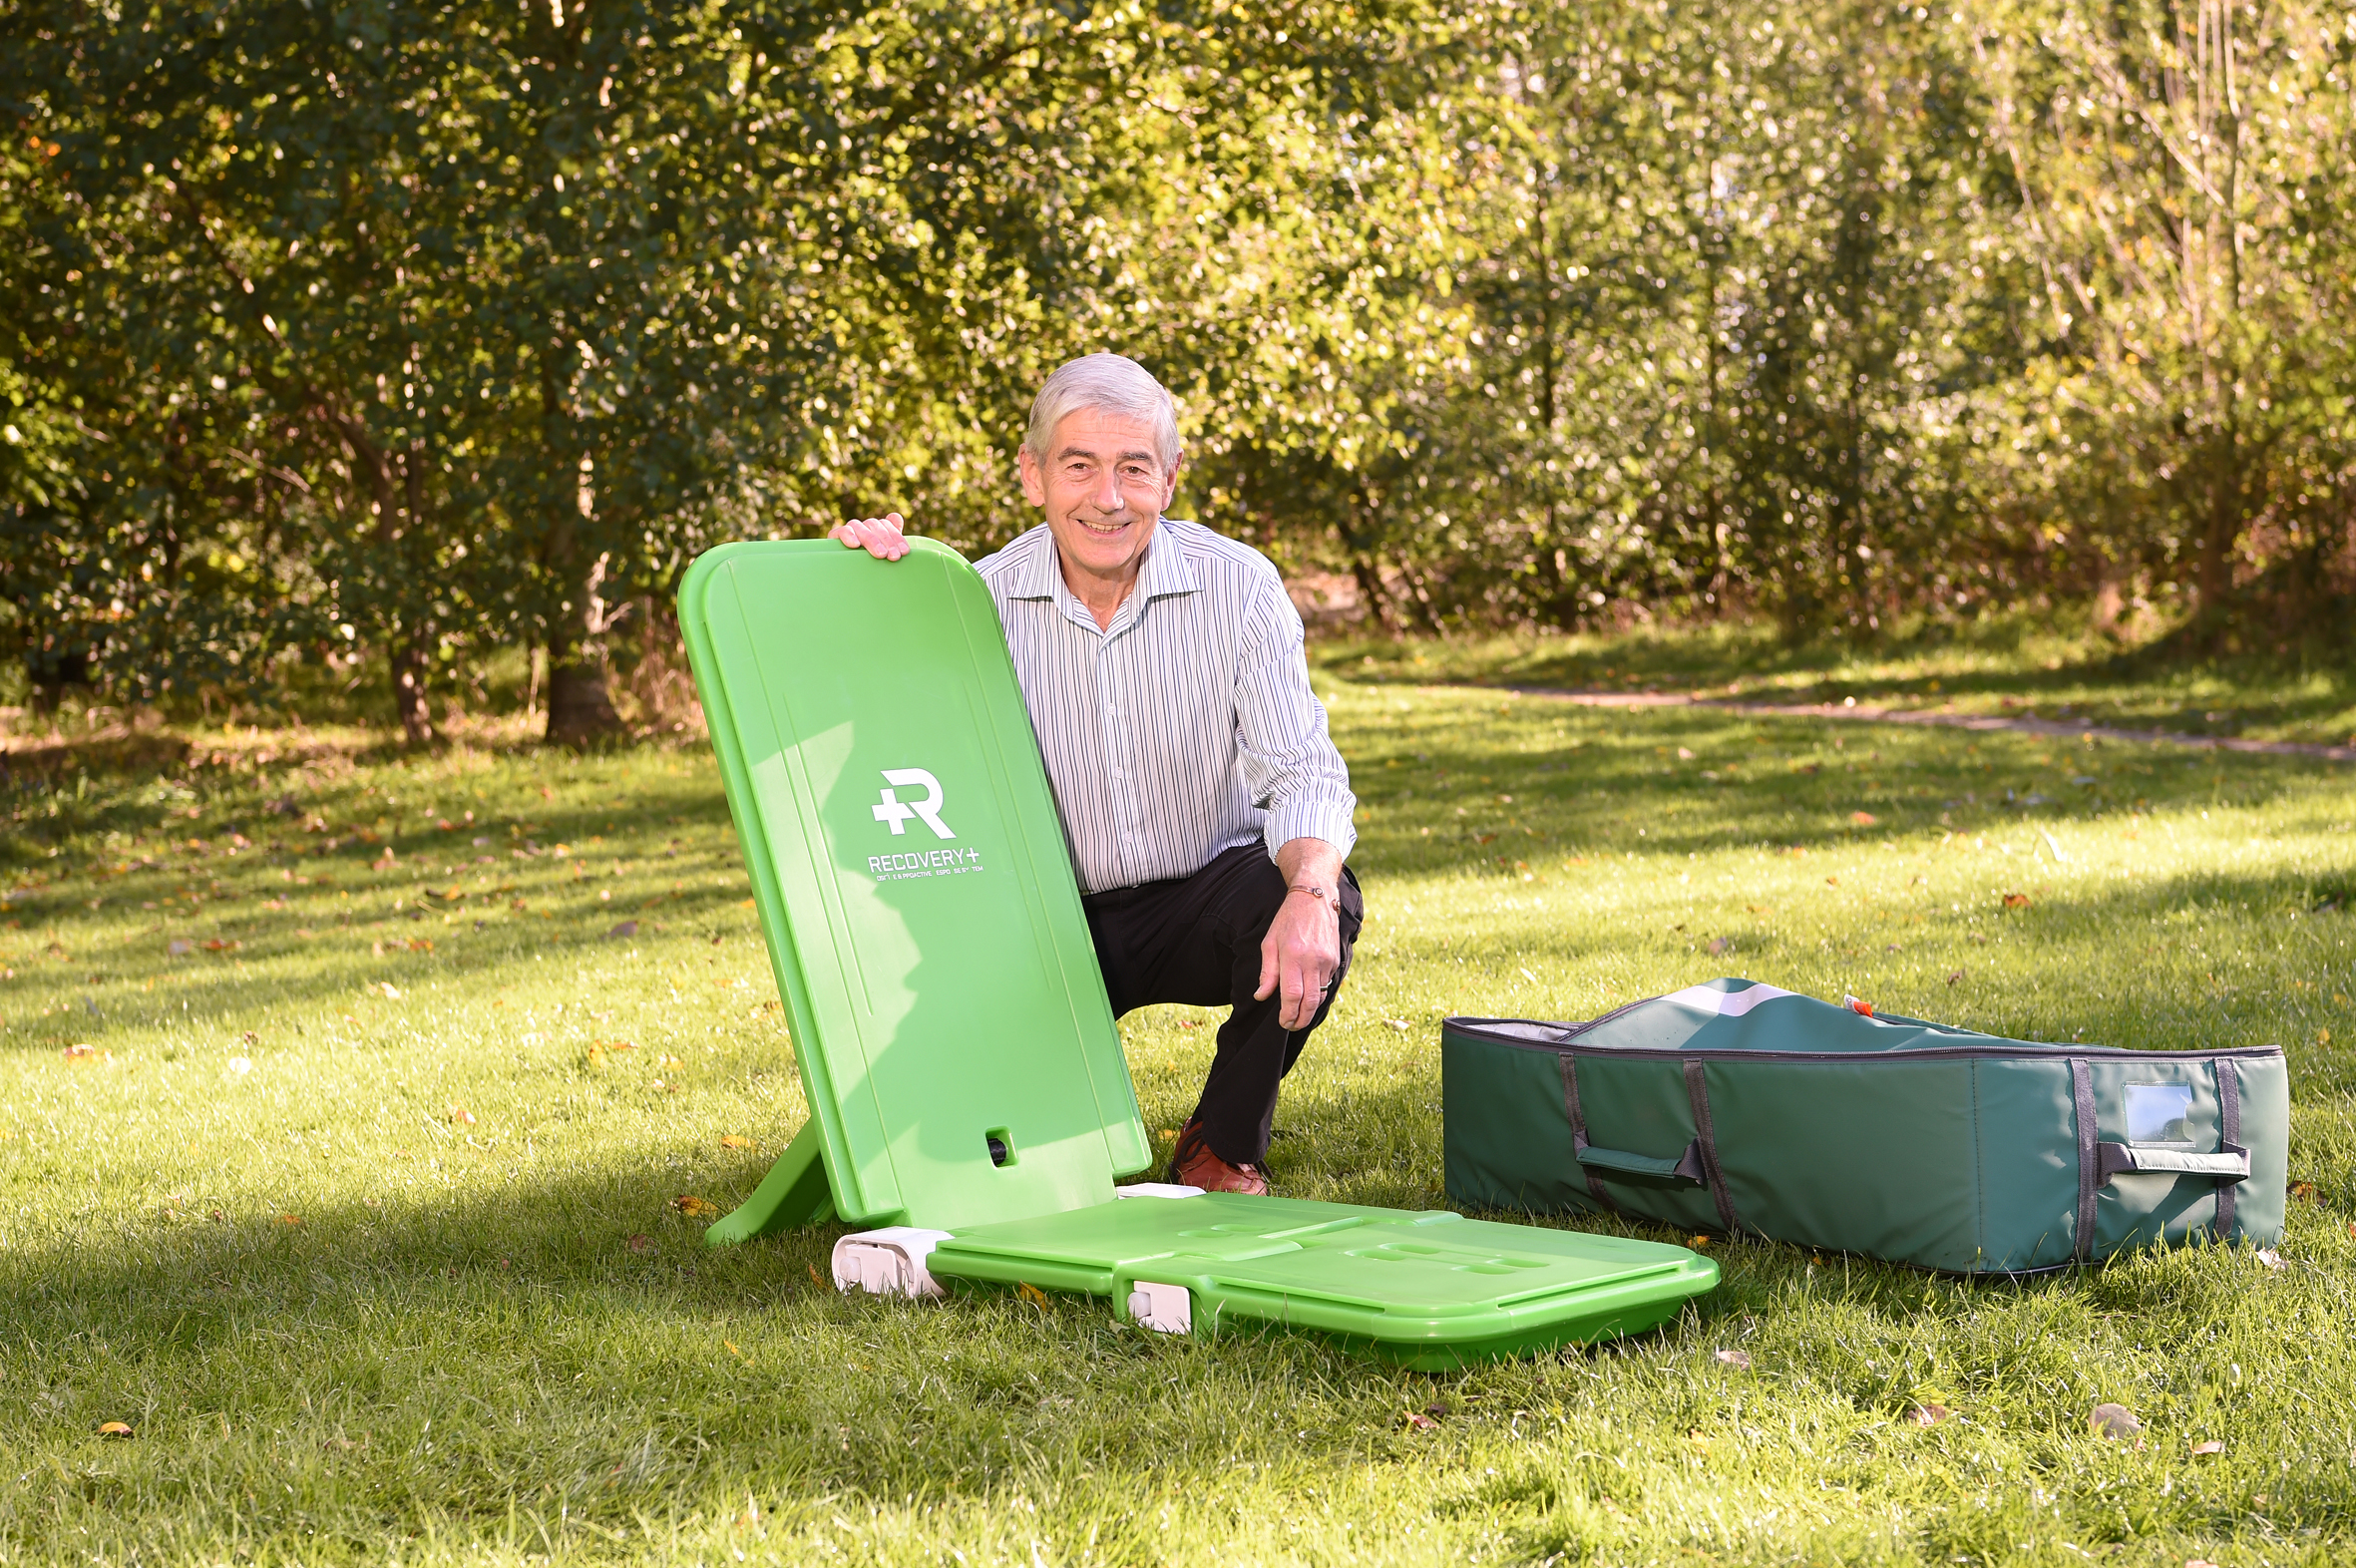 Stretcher firm carries healthy growth